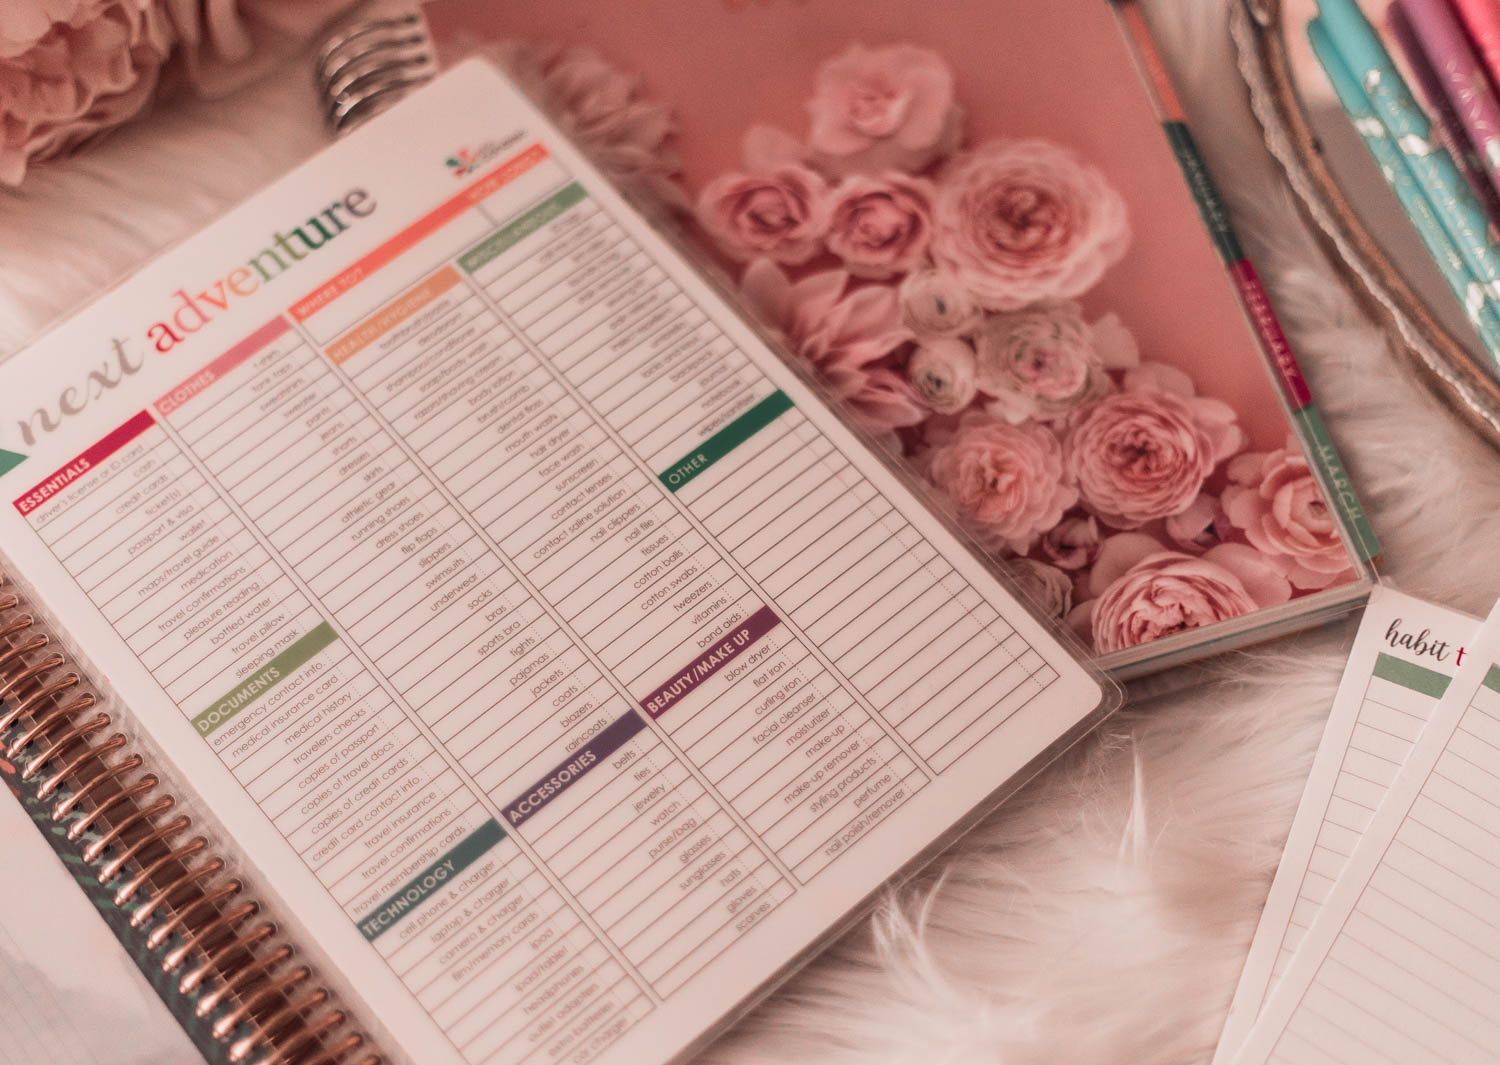 Fashion blogger, Elizabeth Hugen, shares the importance of a Mid-Year Goal Check In along with her secret weapon, the Erin Condren life planner.